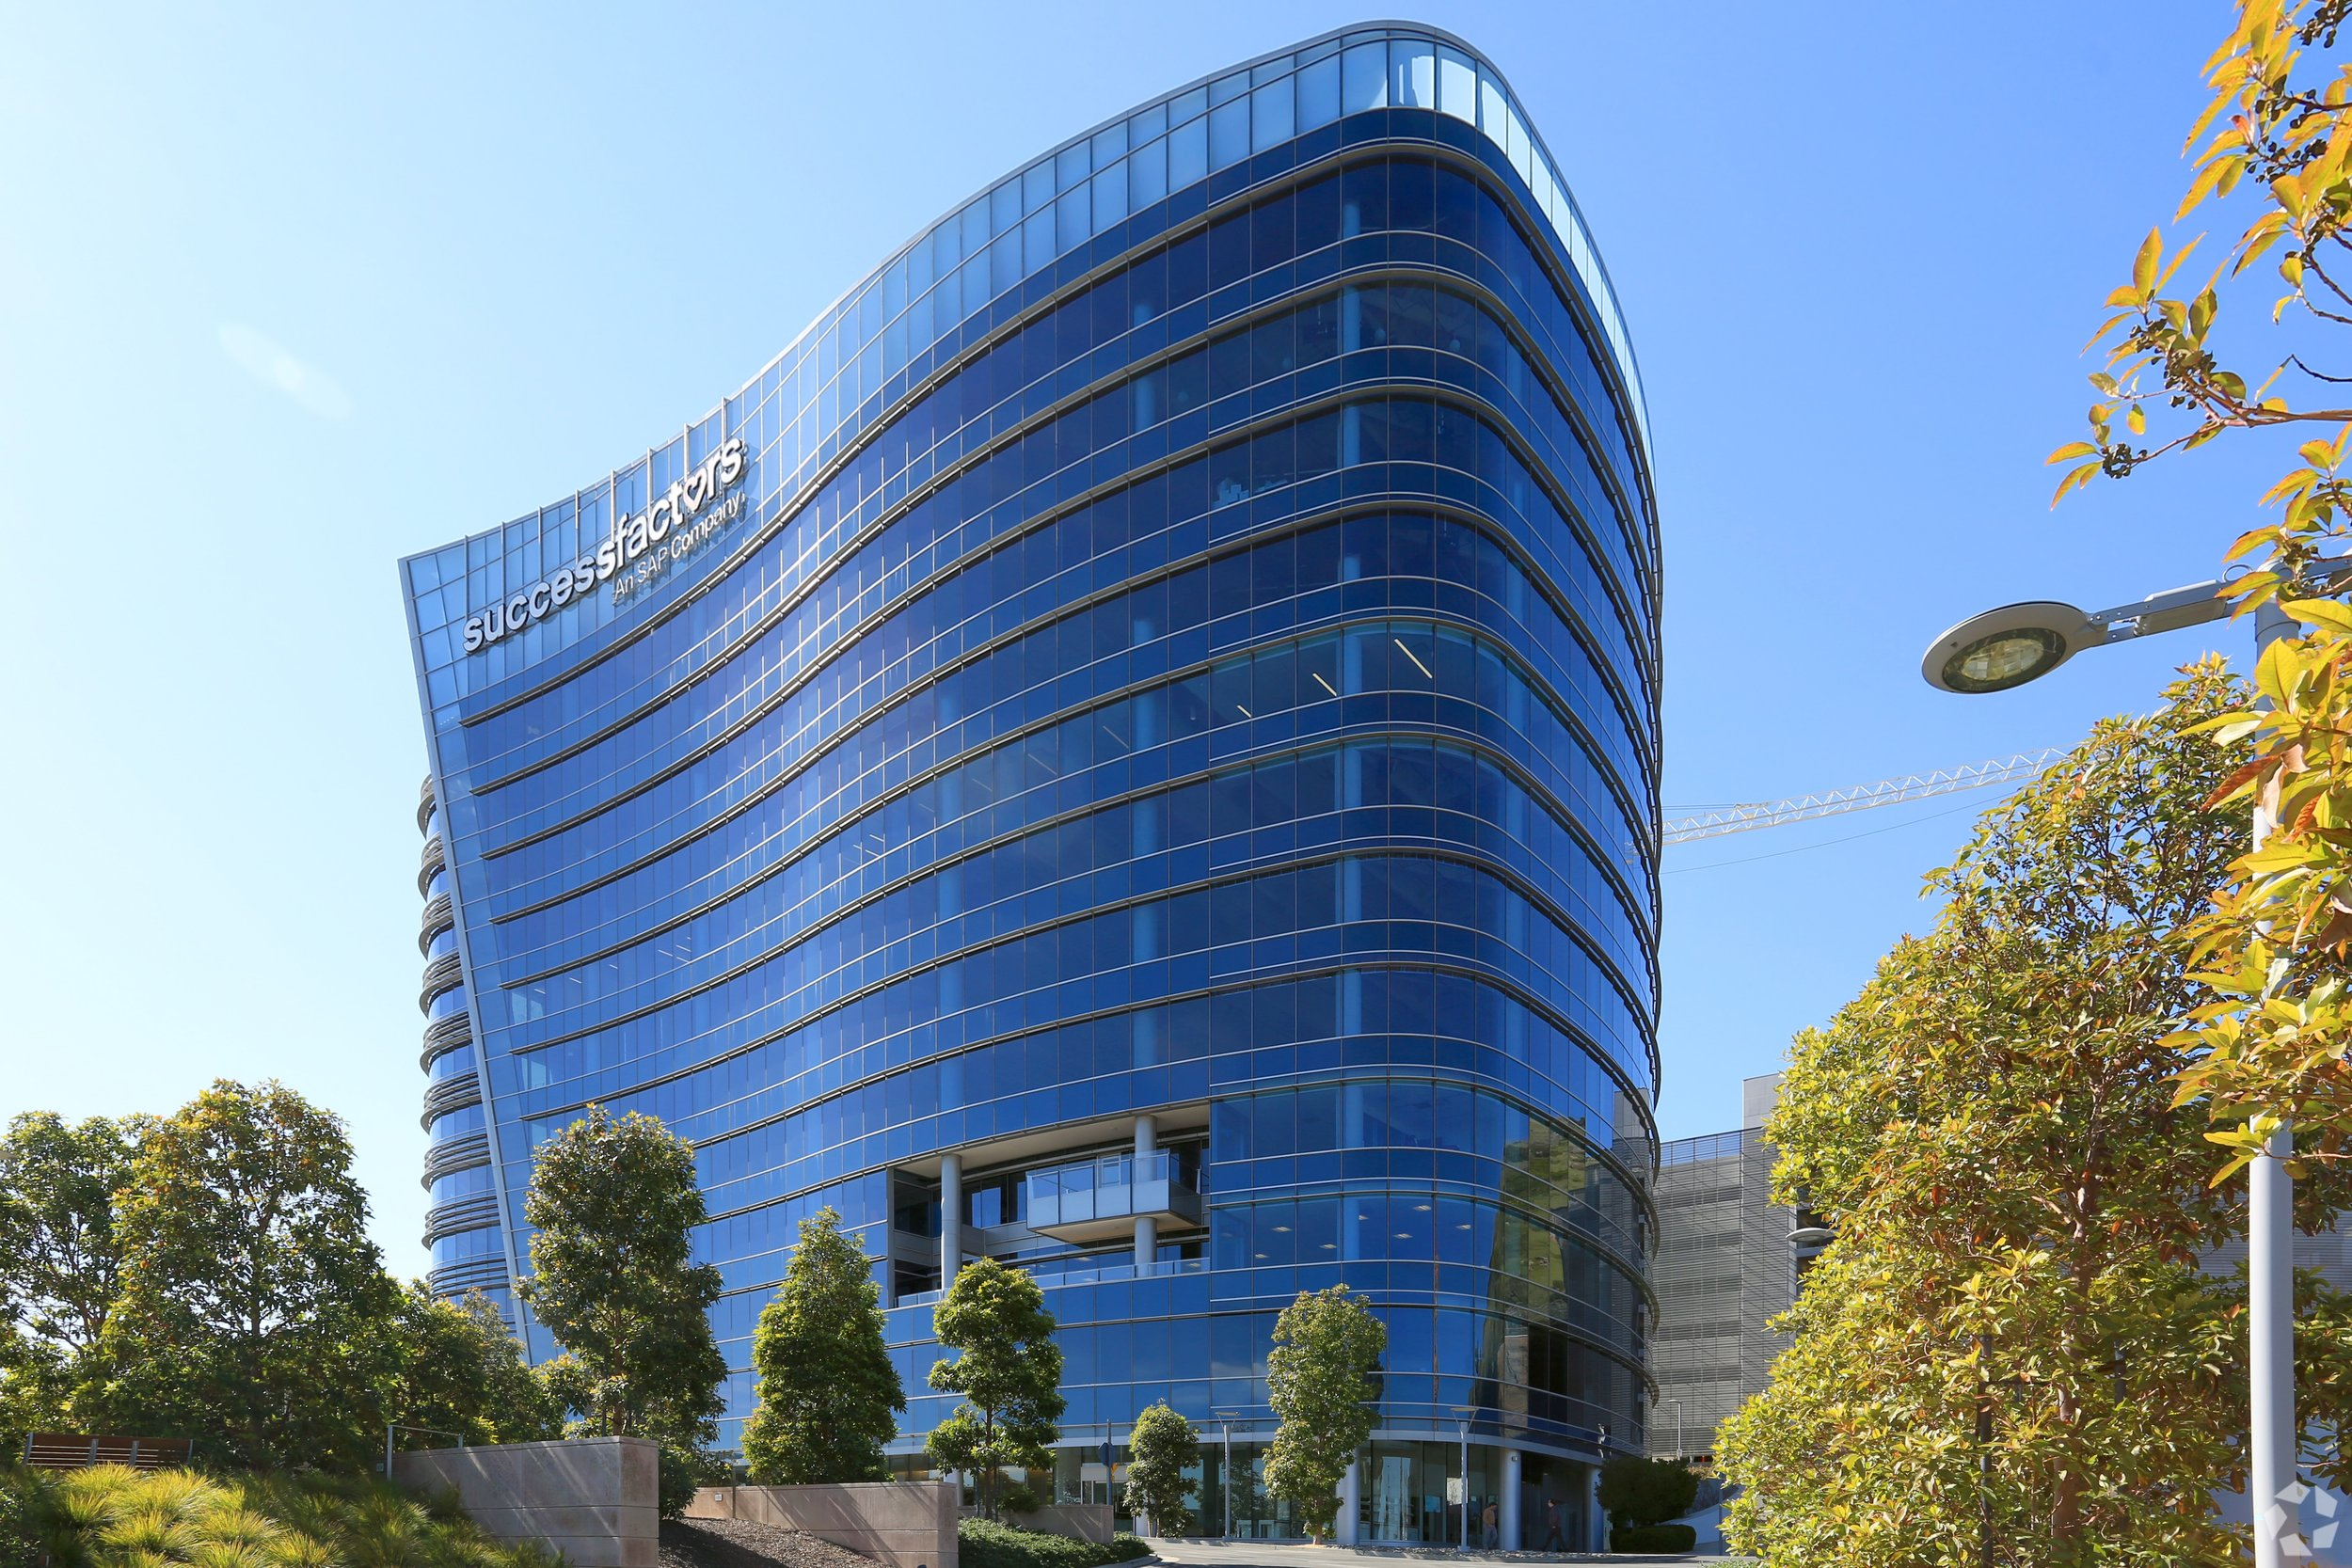 Genesis Towers in South San Francisco provide an unusual opportunity for life science companies. Photo: CoStar